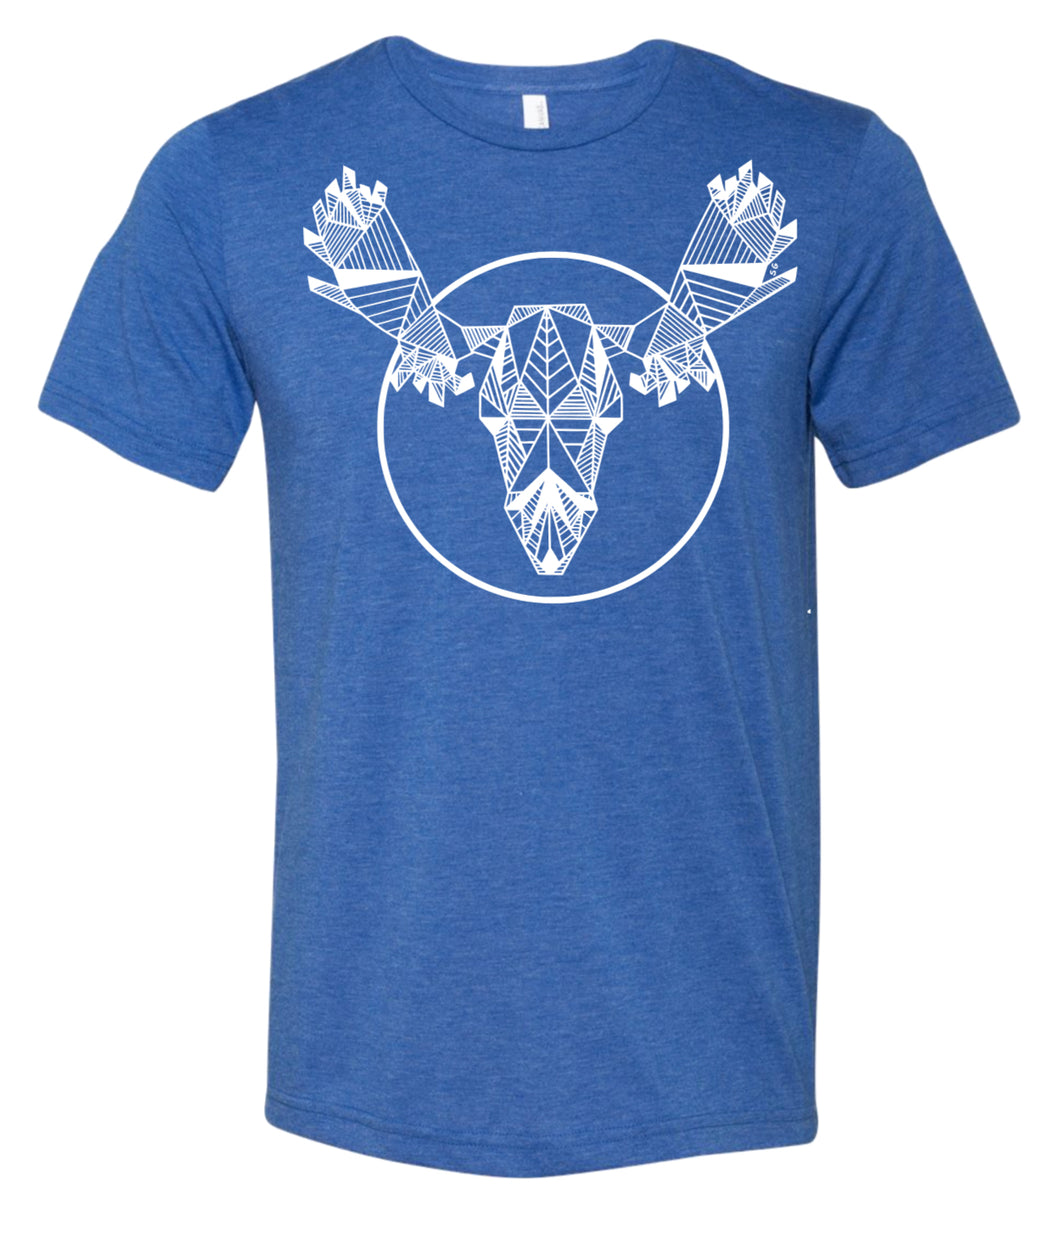 Moose Adult T-Shirt